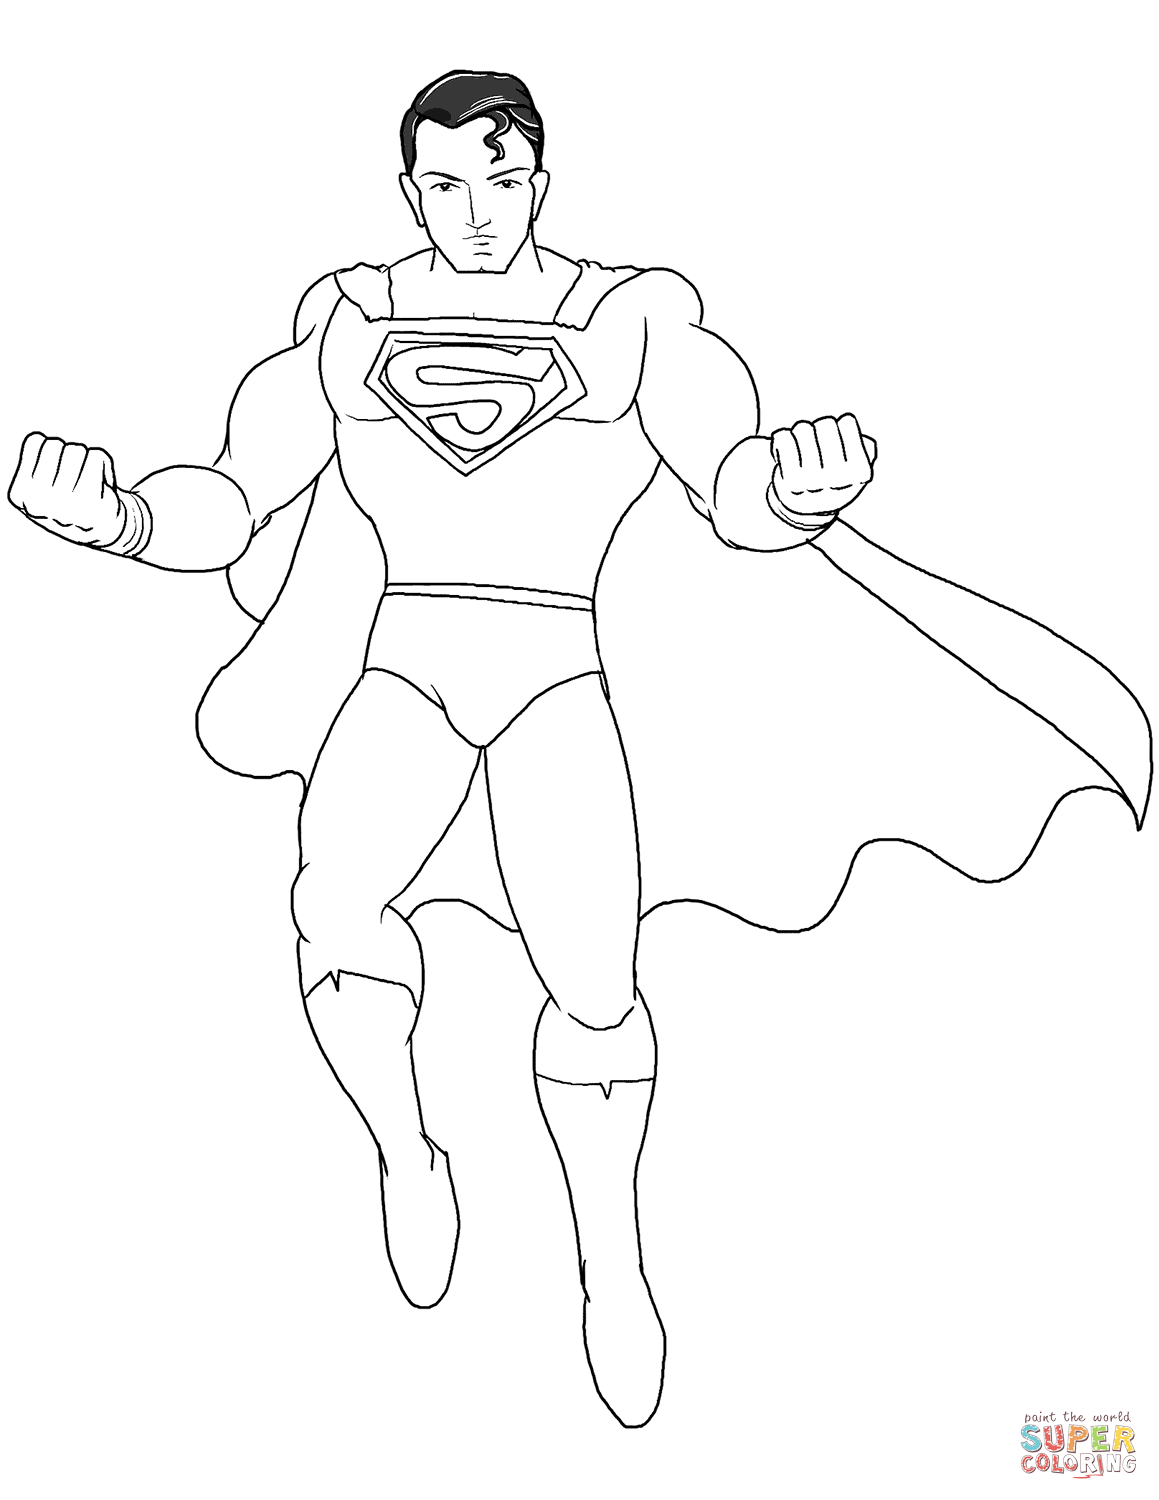 superman coloring images superman coloring pages free printable coloring pages coloring images superman